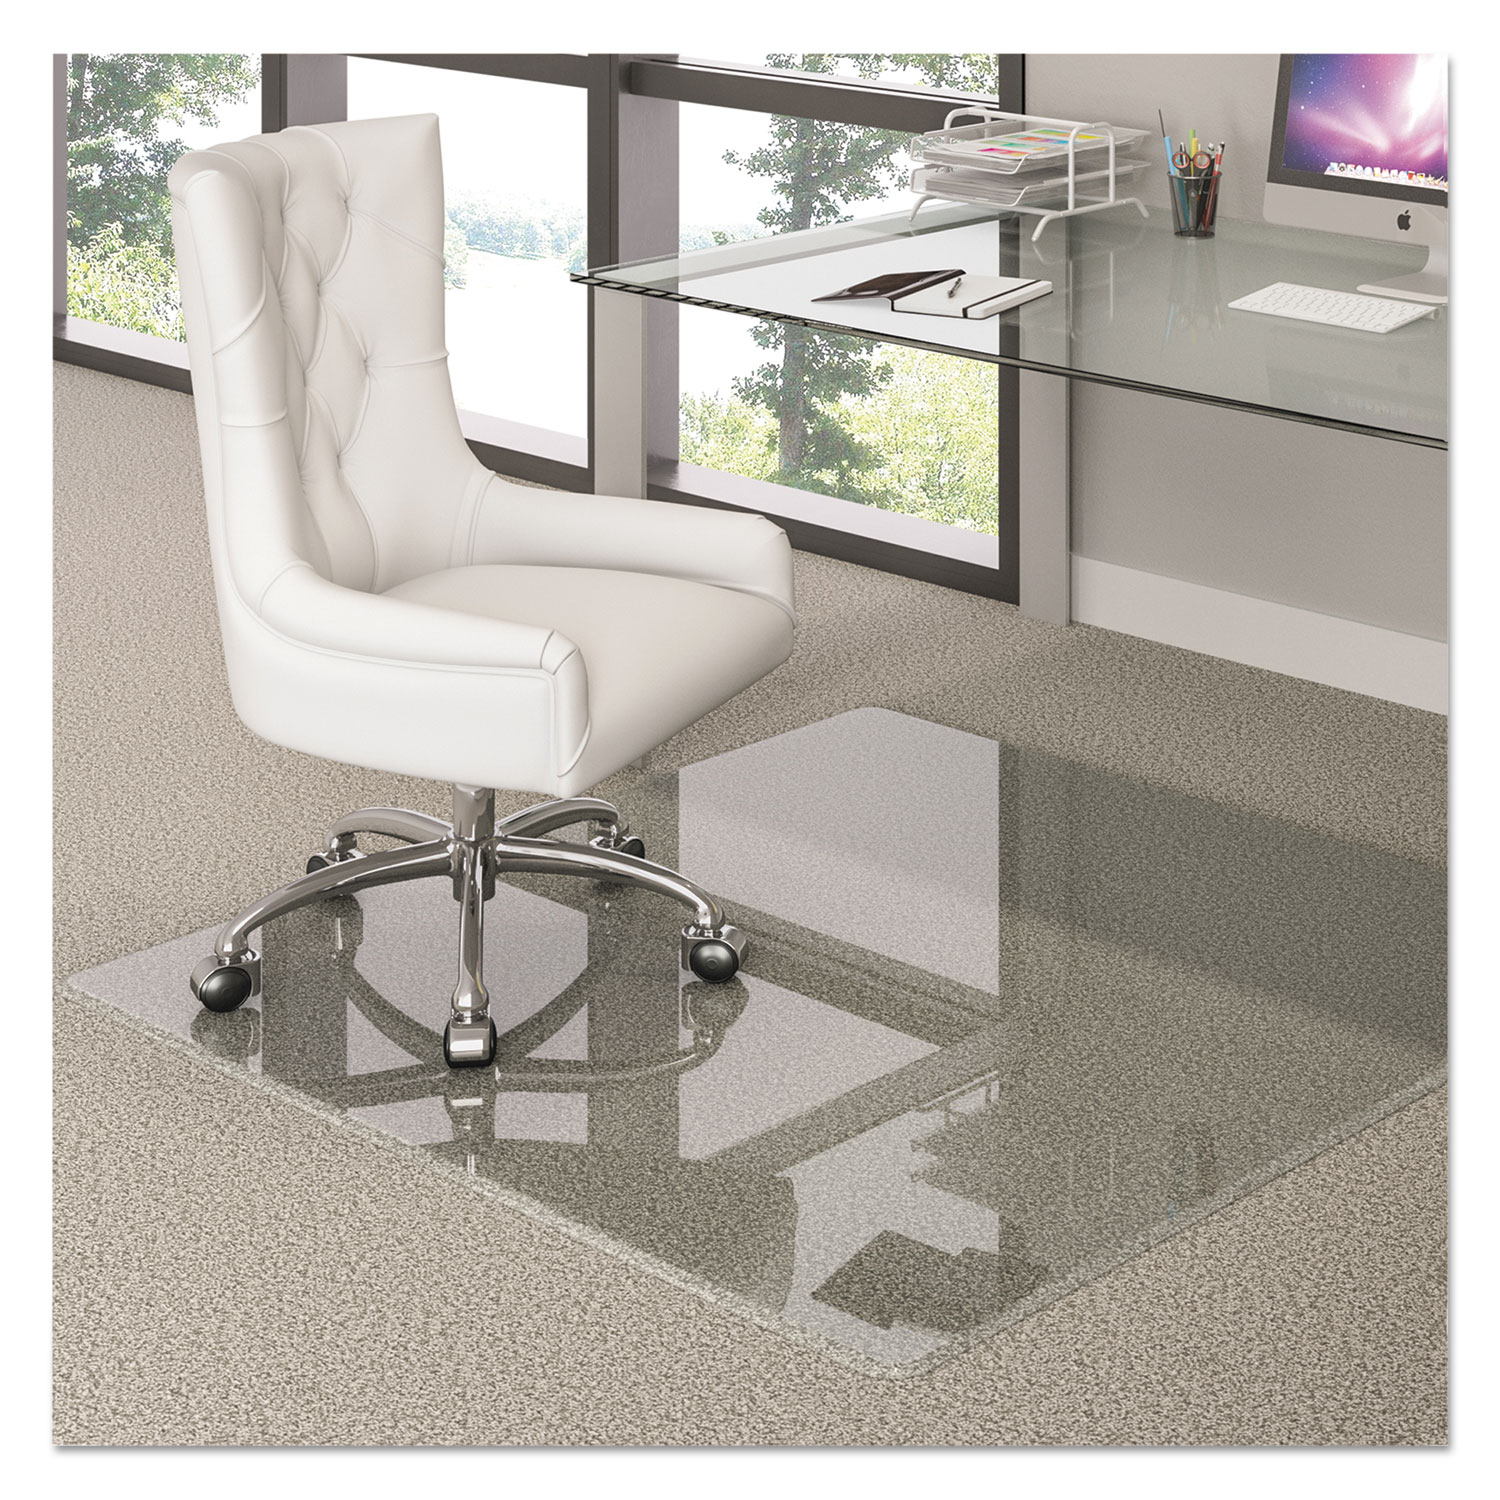 Glass Chair Premium Glass Chair Mat By Deflecto Defcmg70434860